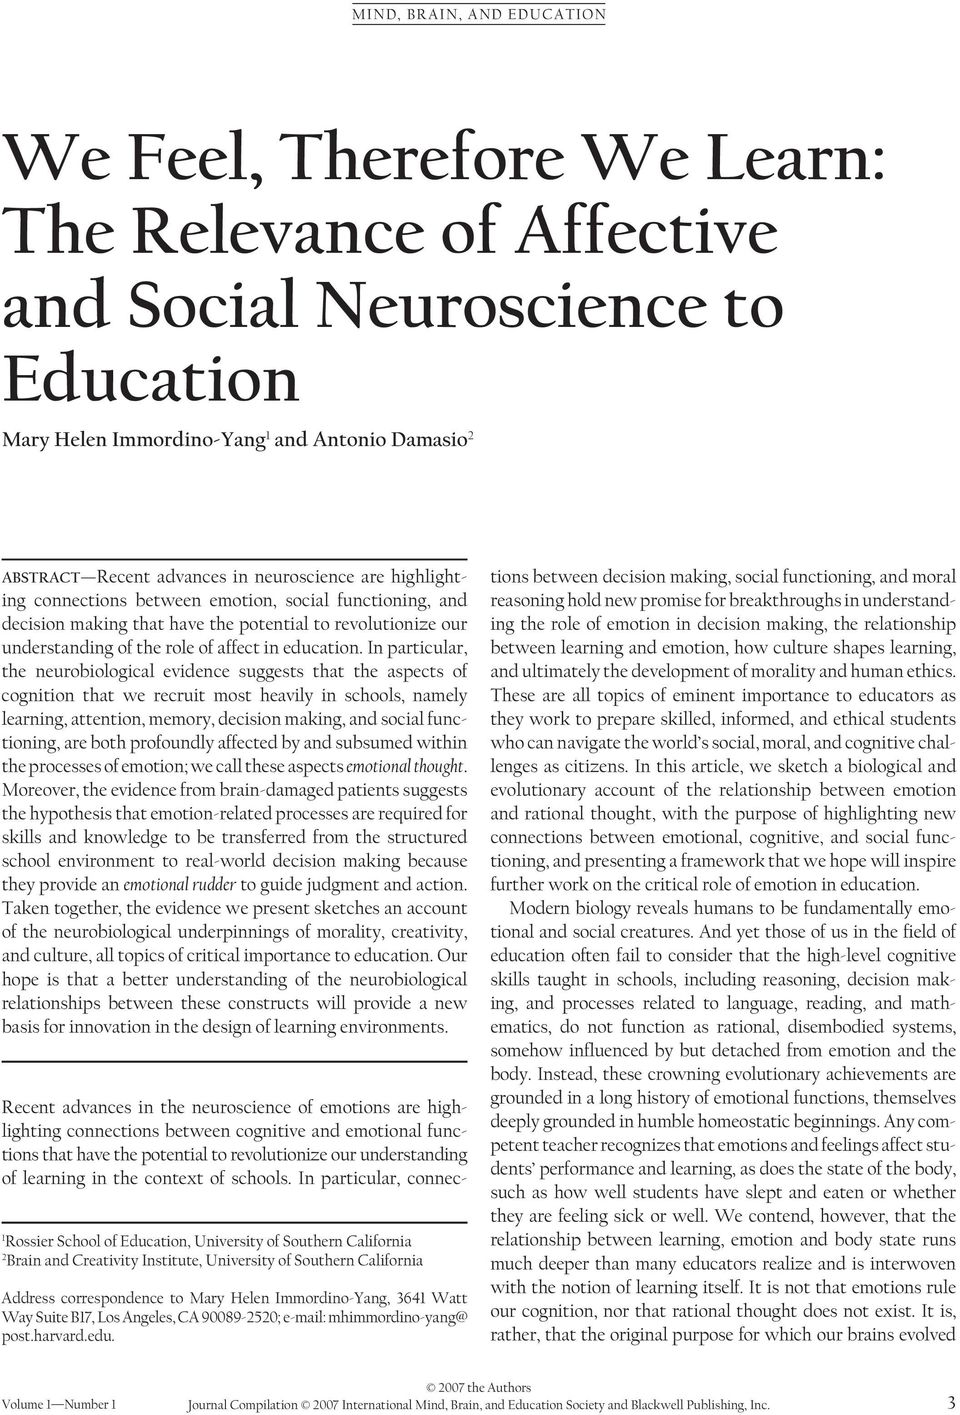 In particular, the neurobiological evidence suggests that the aspects of cognition that we recruit most heavily in schools, namely learning, attention, memory, decision making, and social